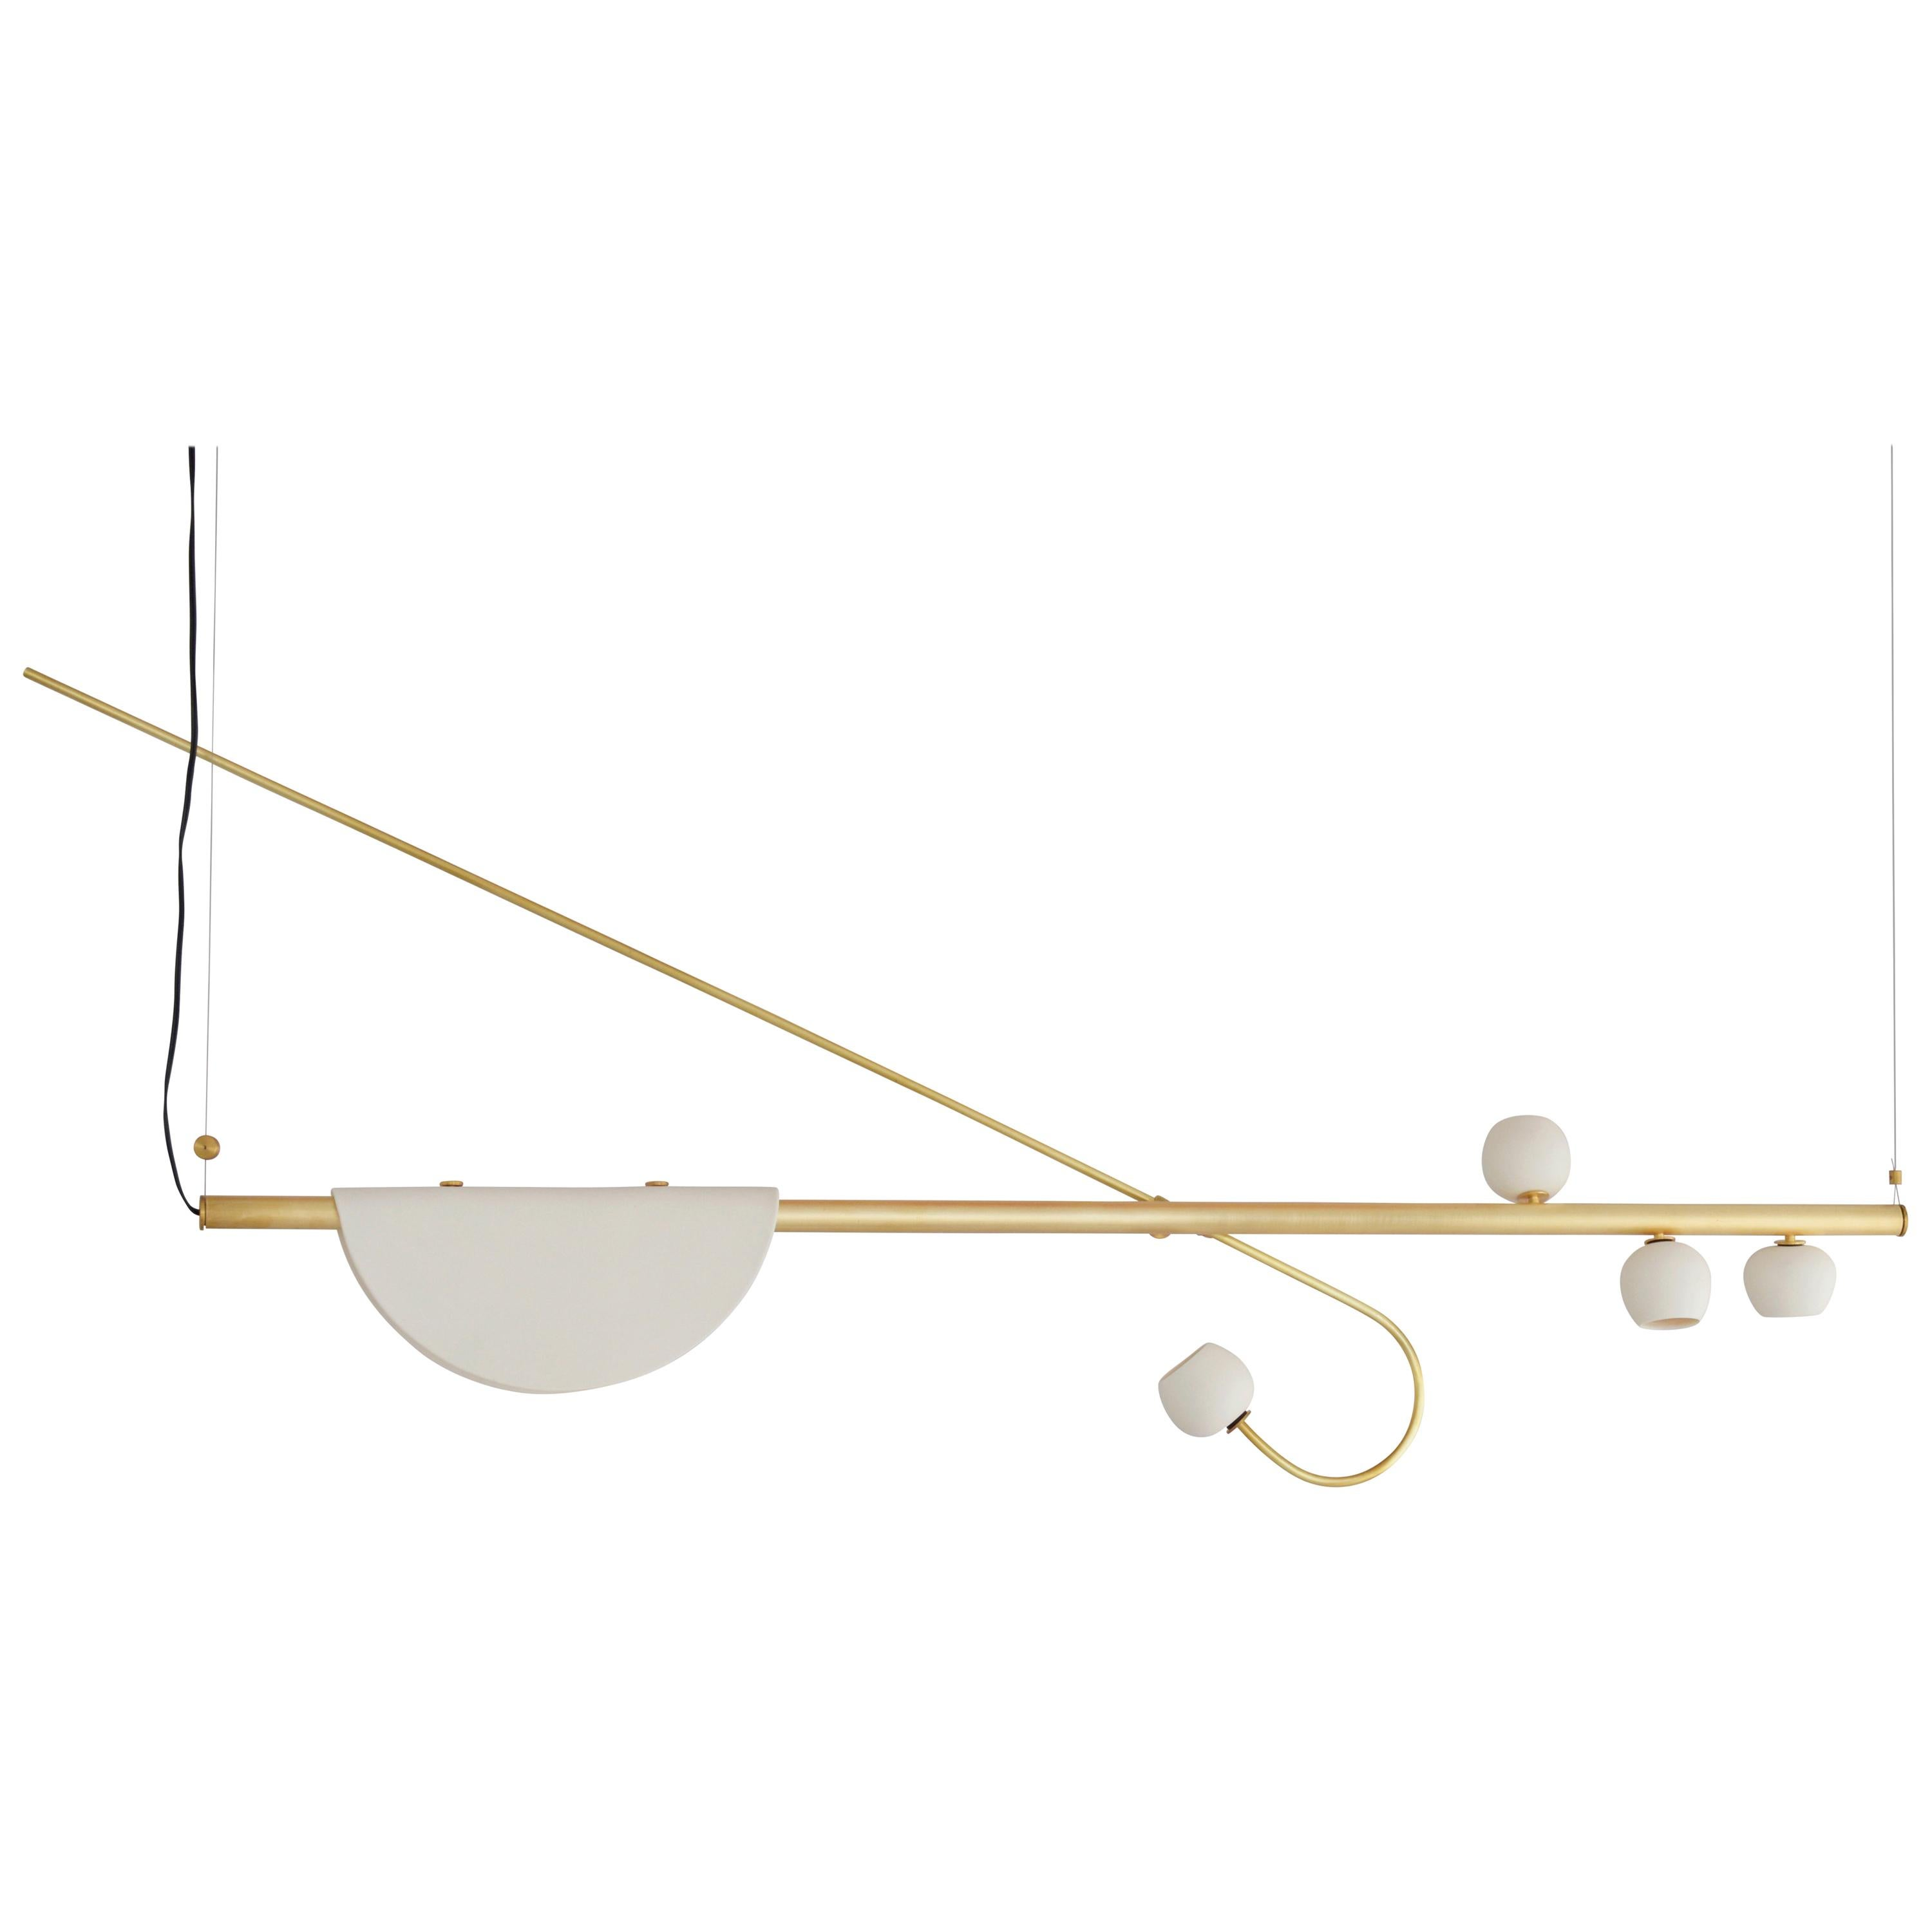 Brass Sculpted Light Suspension, My Queen IV, Signed Periclis Frementitis